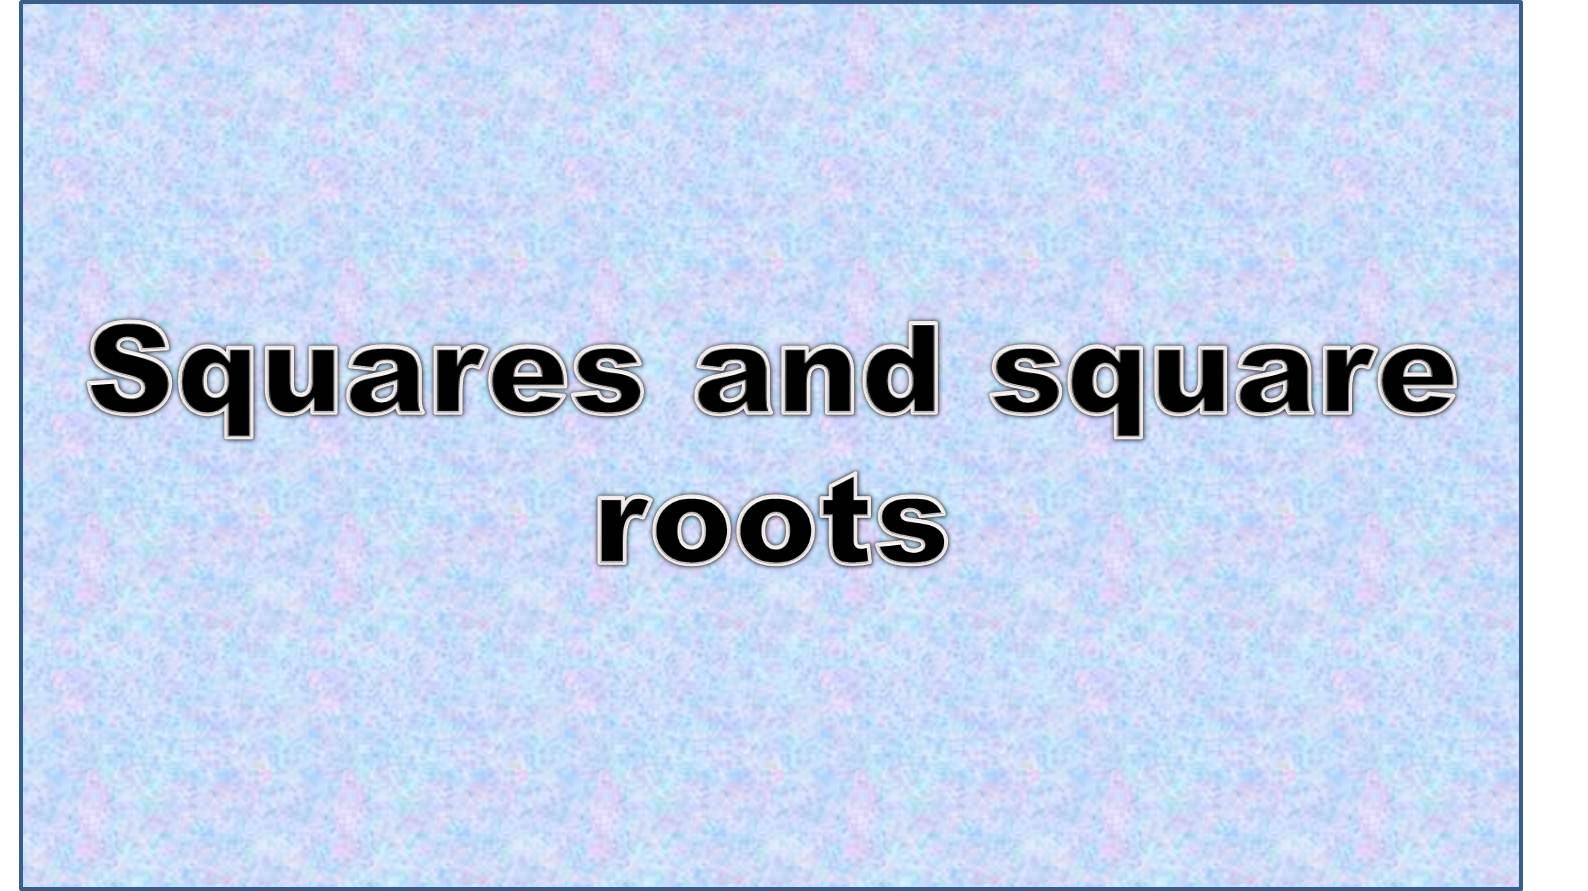 http://study.aisectonline.com/images/Simplifying square roots.jpg